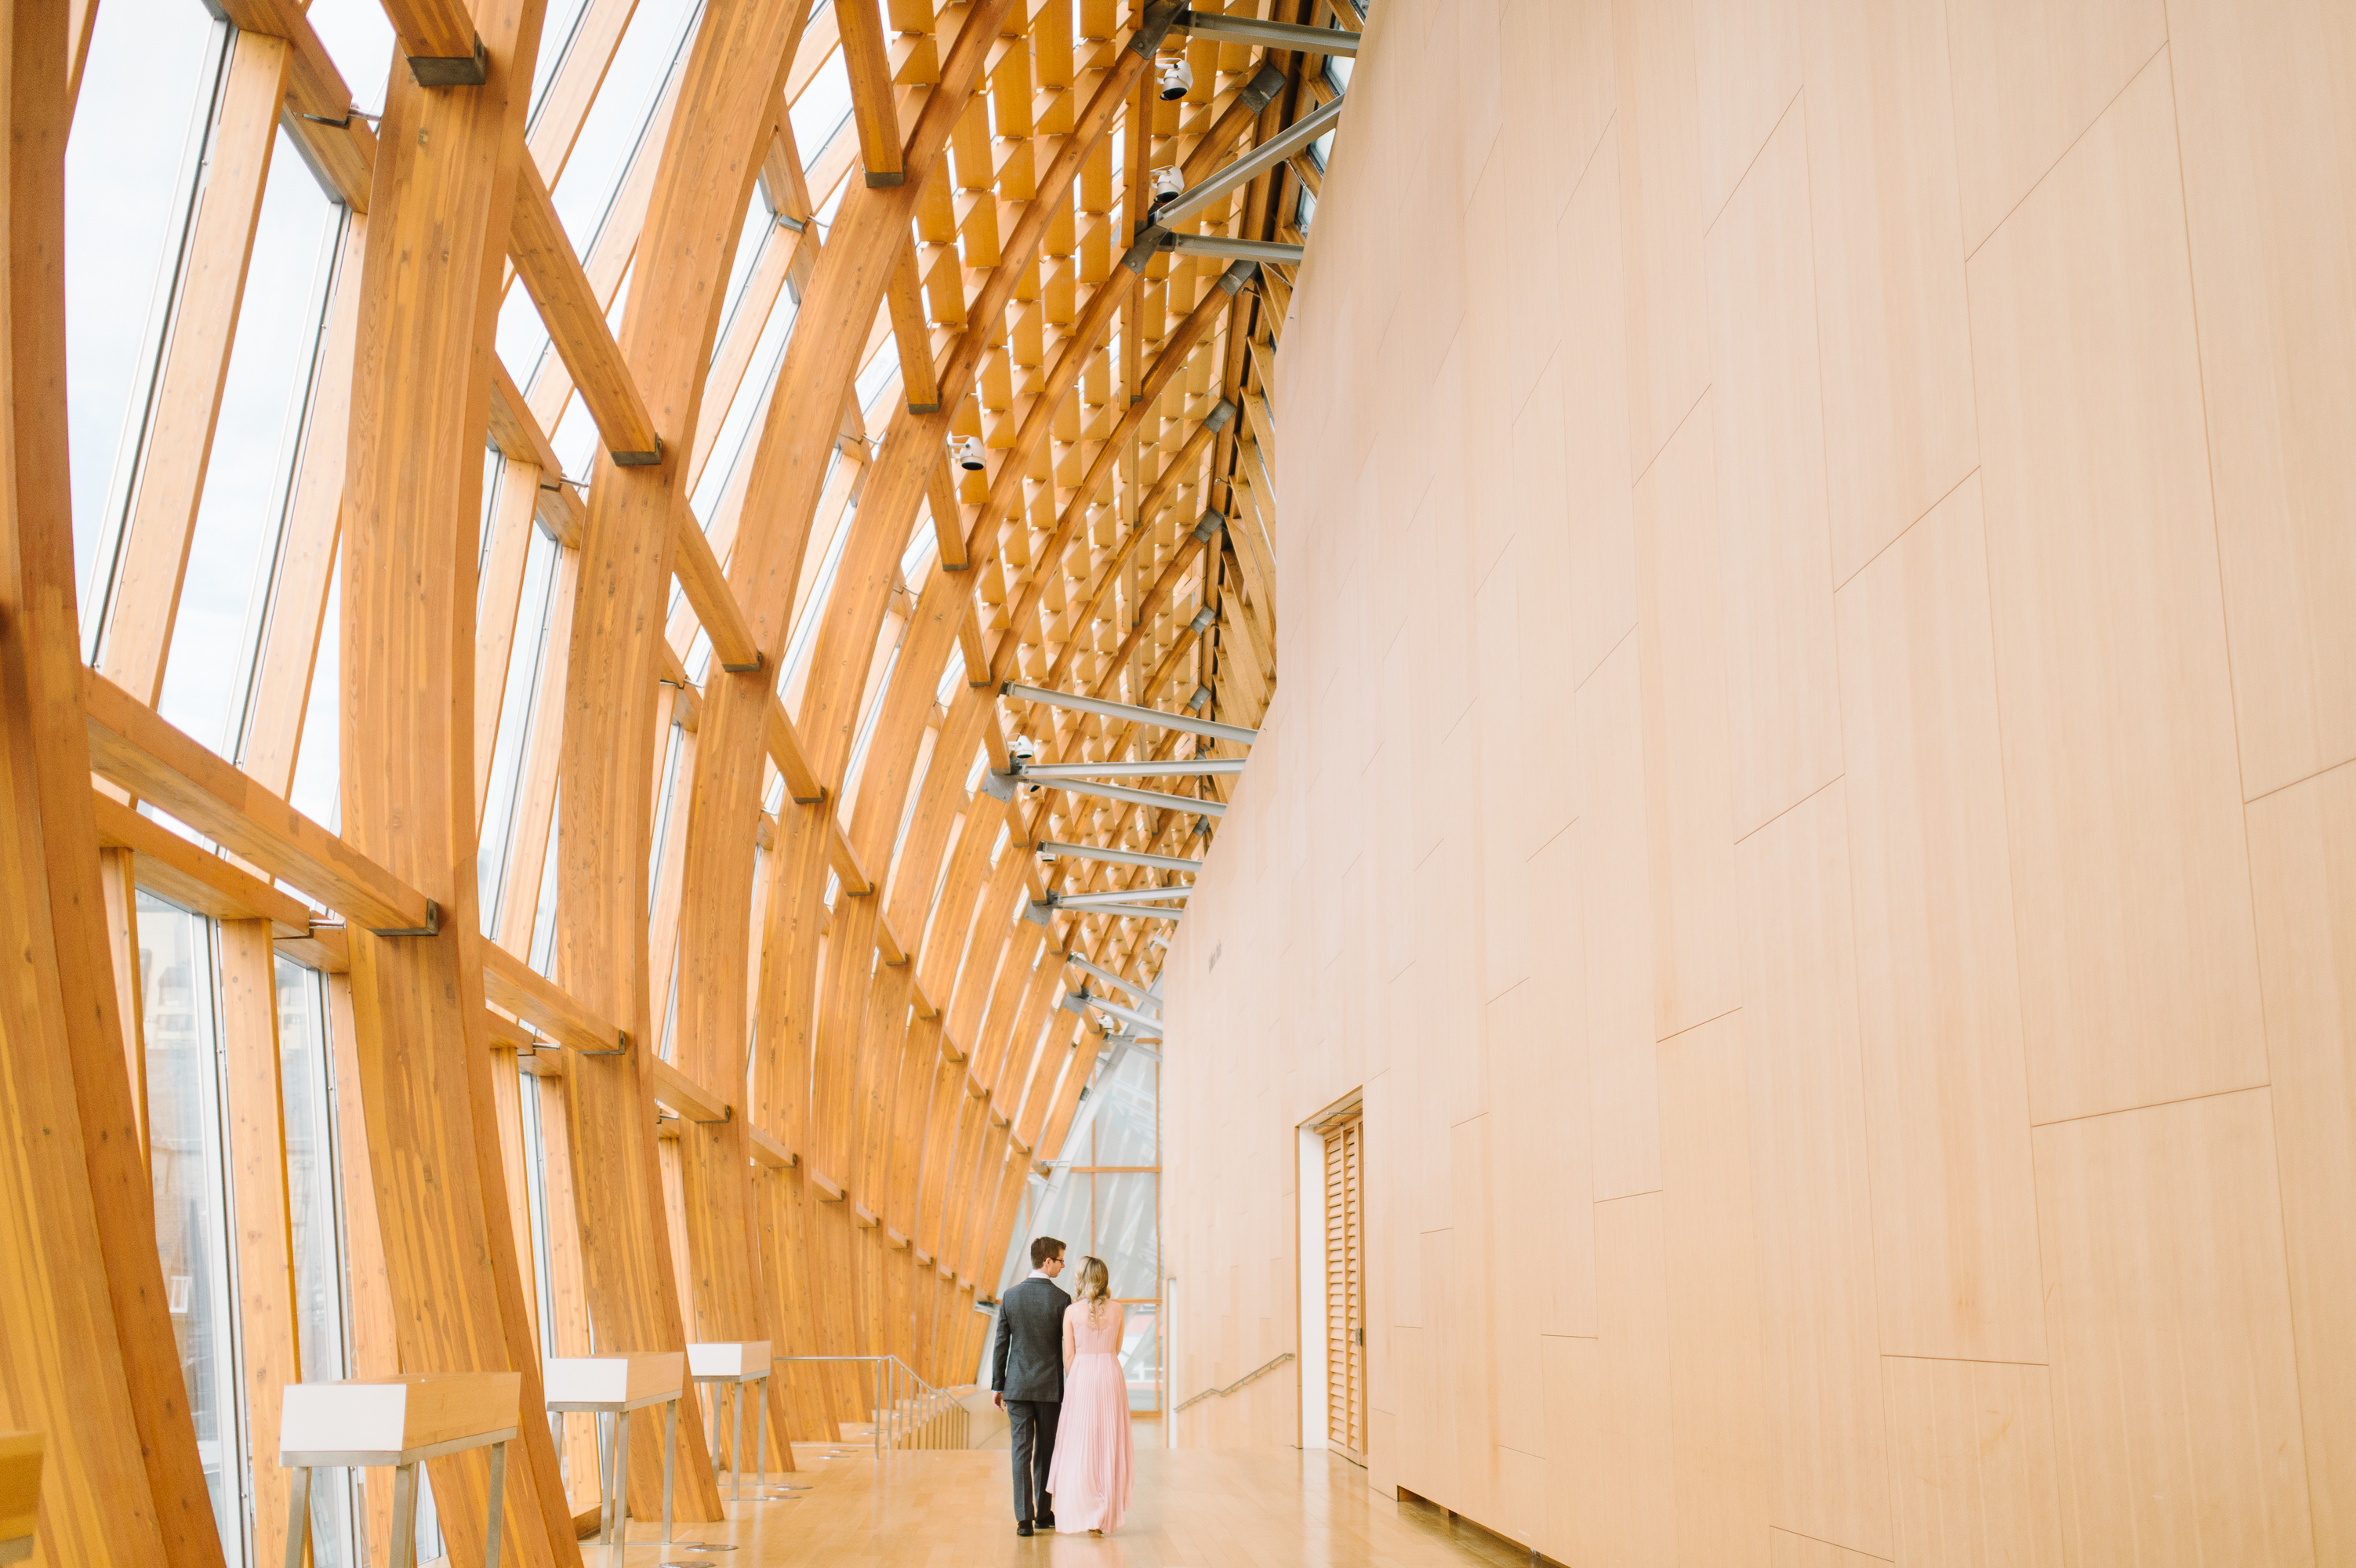 tara-mcmullen-photography-toronto-wedding-photographer-AGO-engagement-session-art-gallery-of-ontario-engagement-session-002